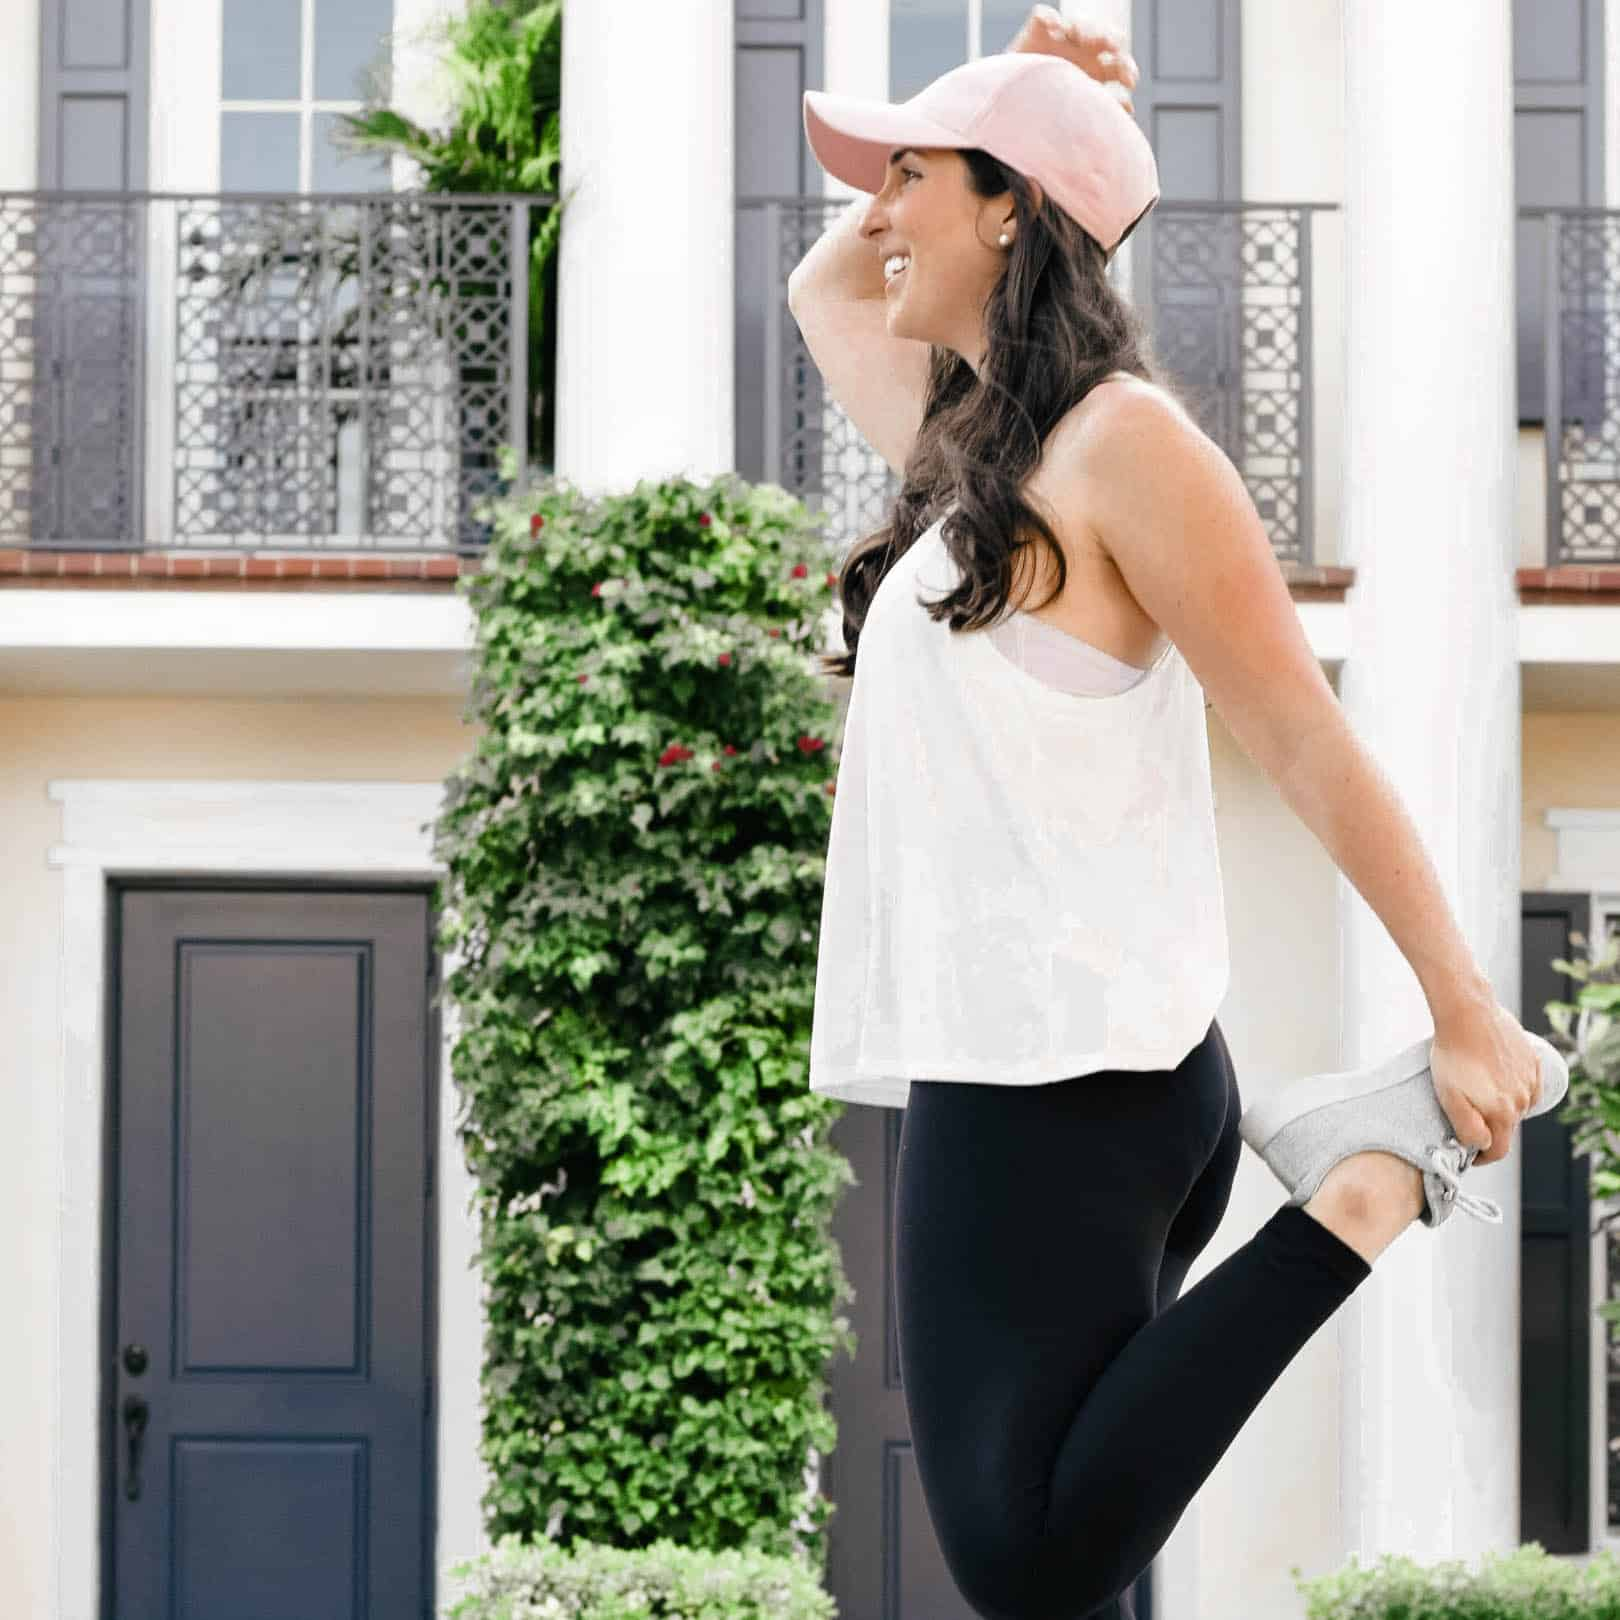 Fall Back Into A Fitness Routine_ Tips & Workouts (Pregnancy Friendly), fitness motivation inspiration and tips for women, pregnancy workouts, female health and fitness ideas, #pregnancyworkouts, #pregnancyworkout, #healthandfitness, #fitnessinspo, #fitnesstips, #workoutideas, #workouttips, #workoutroutine